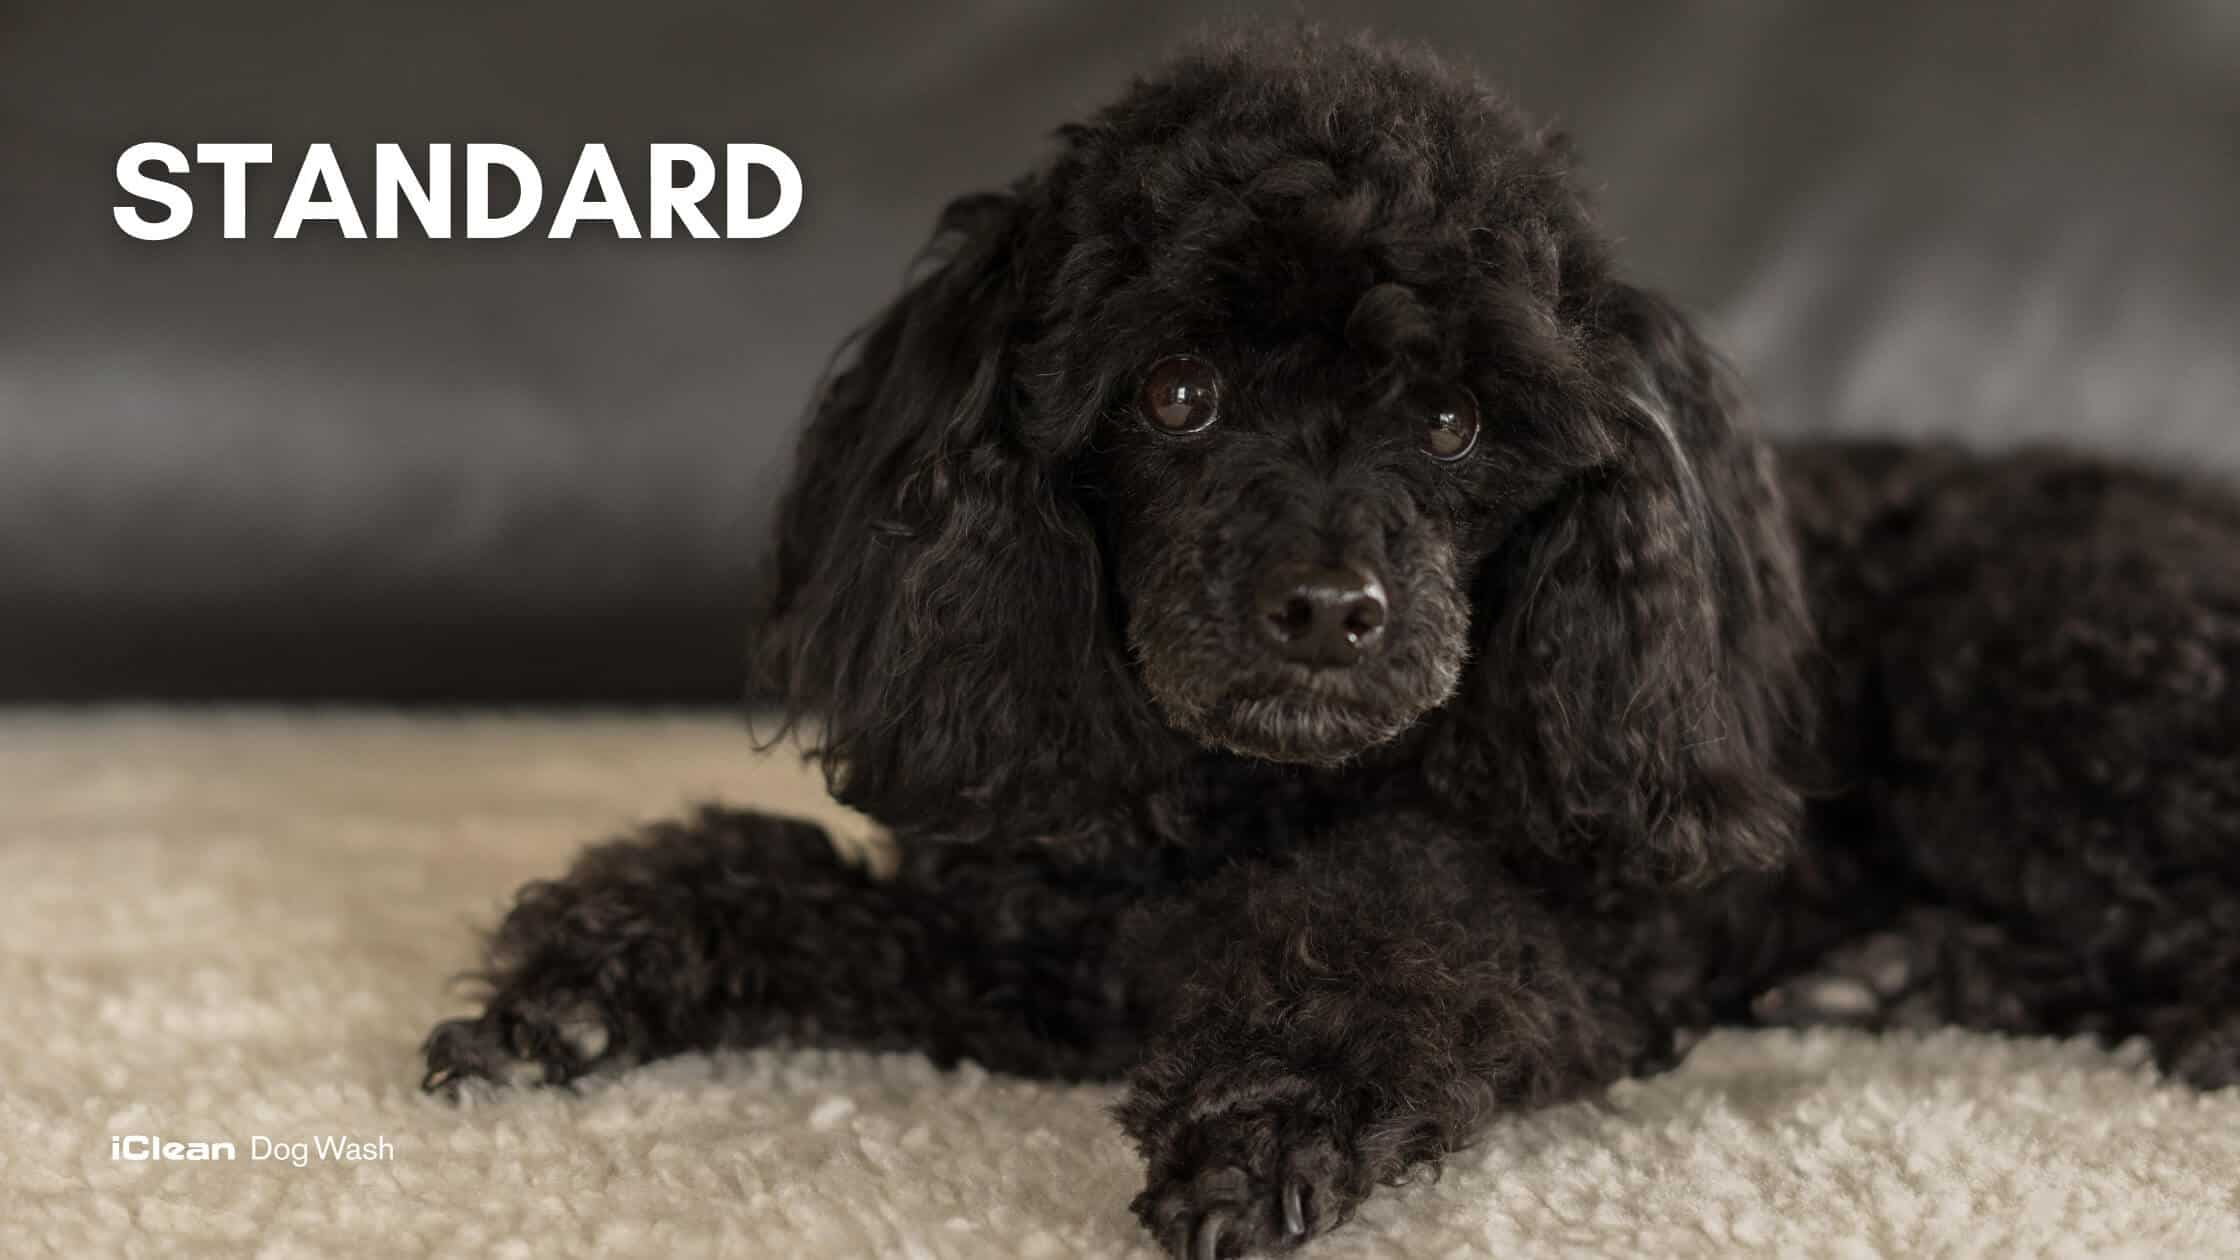 Types of poodles | Variety of poodles | The poodle breed ...